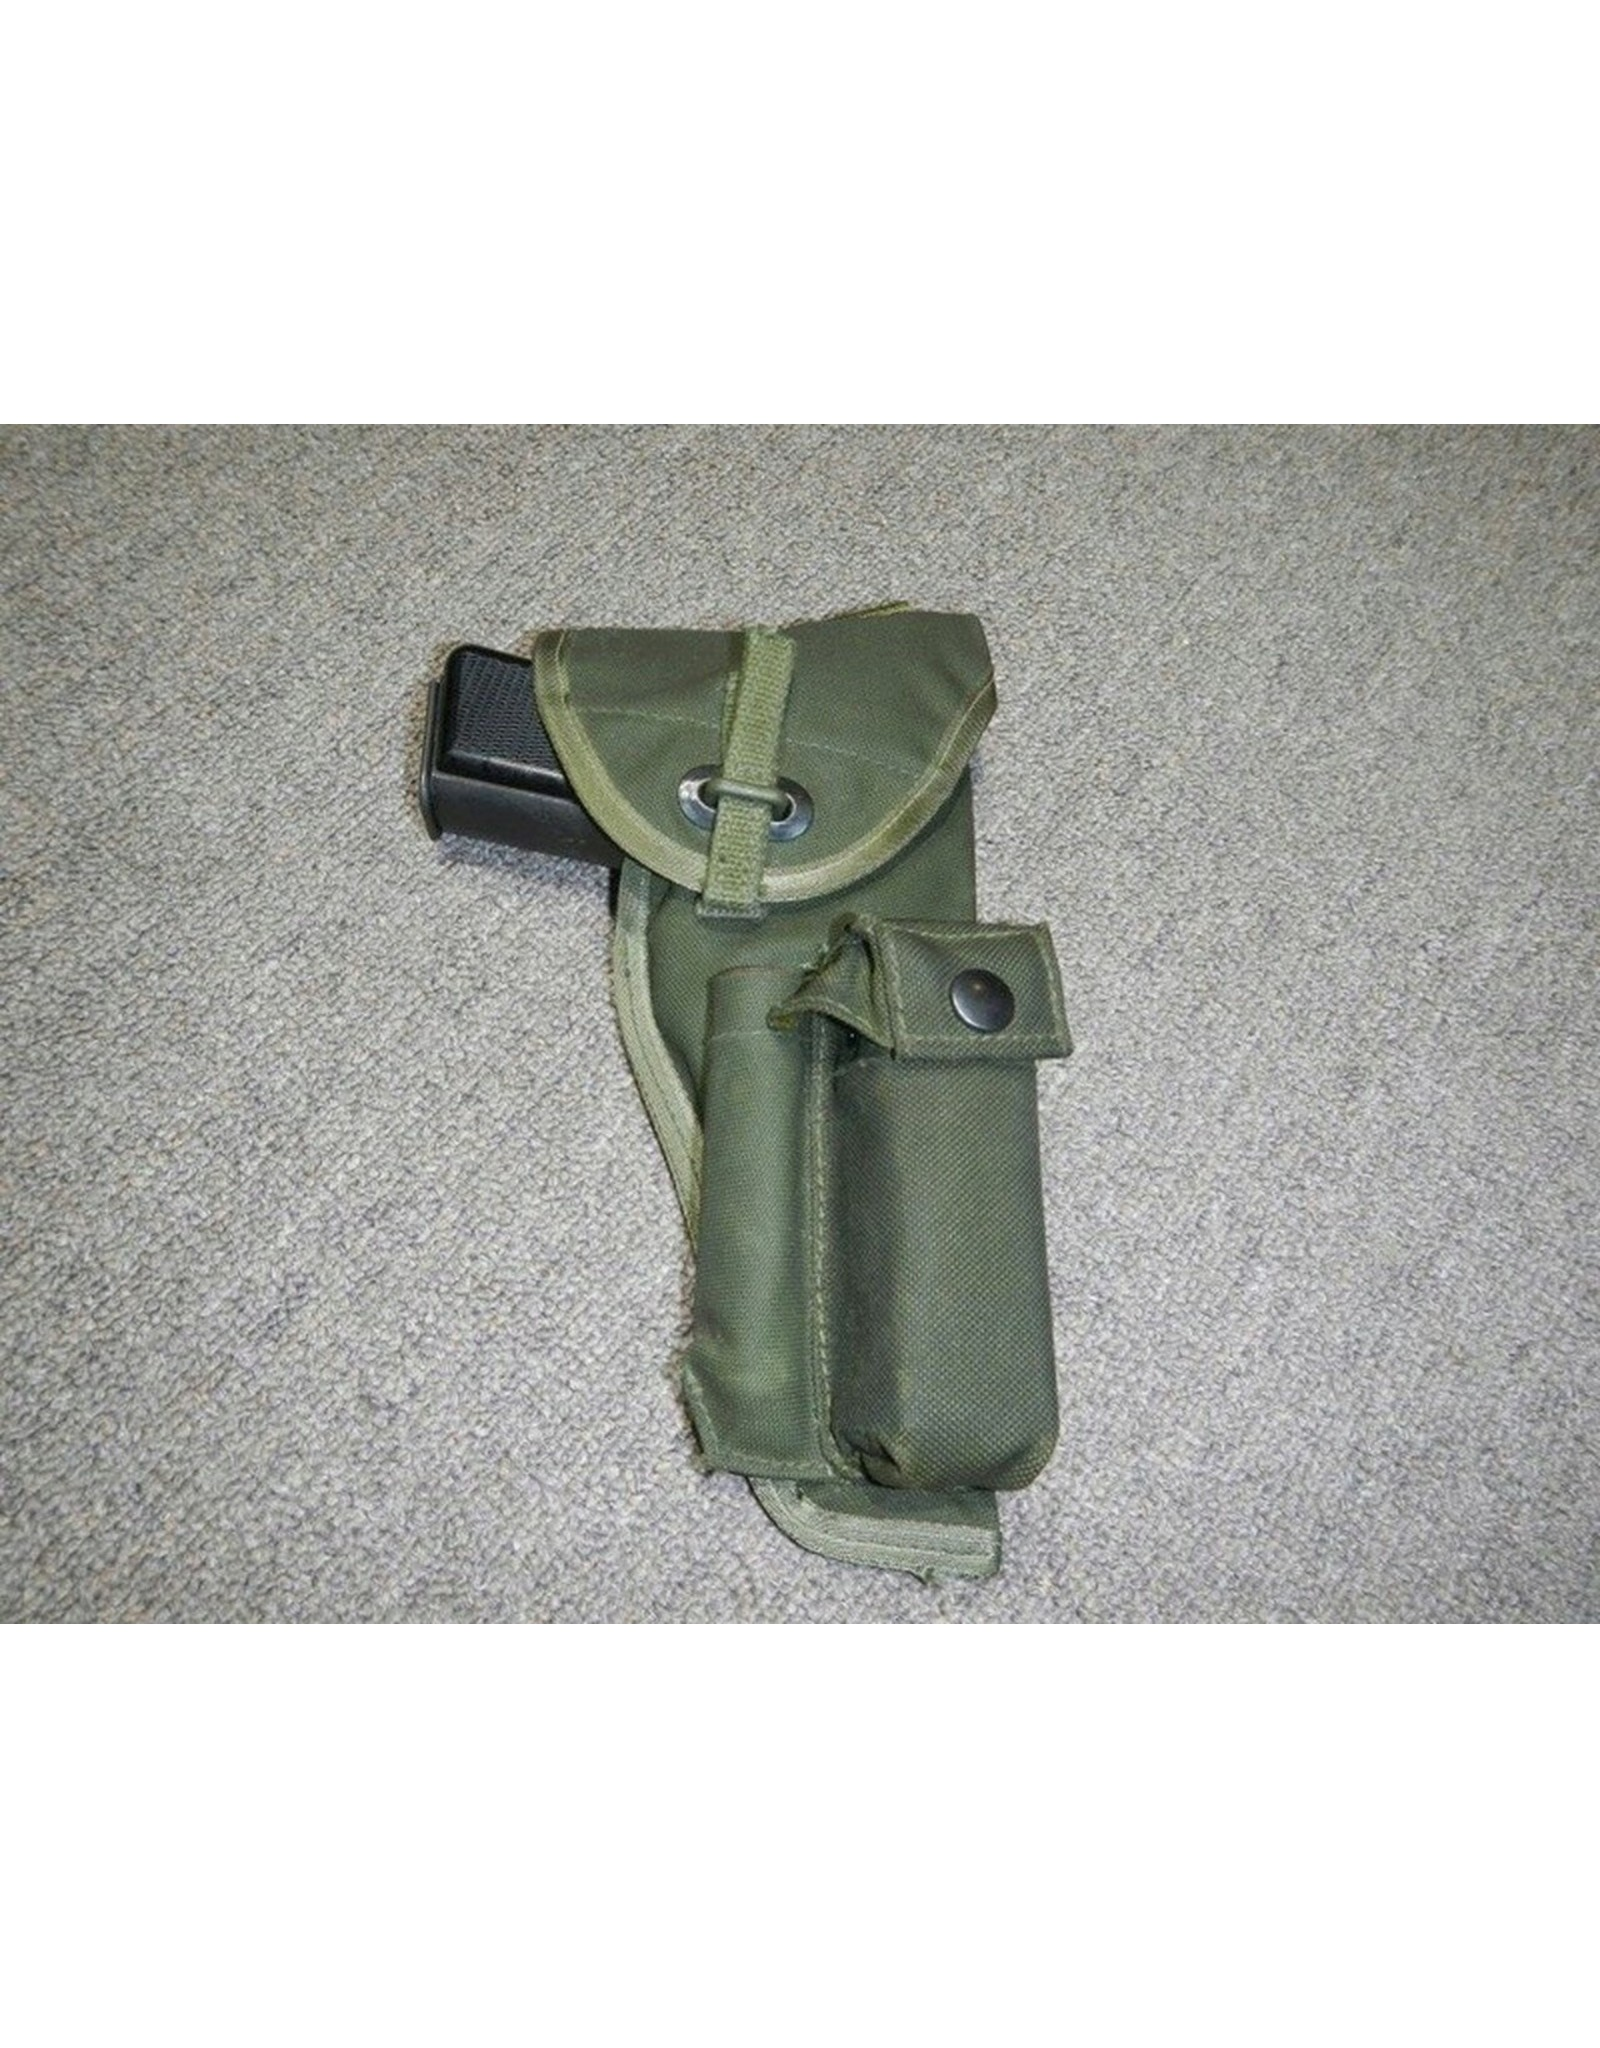 CANADIAN SURPLUS Canadian Armed Forces '82 Pattern Web Holster